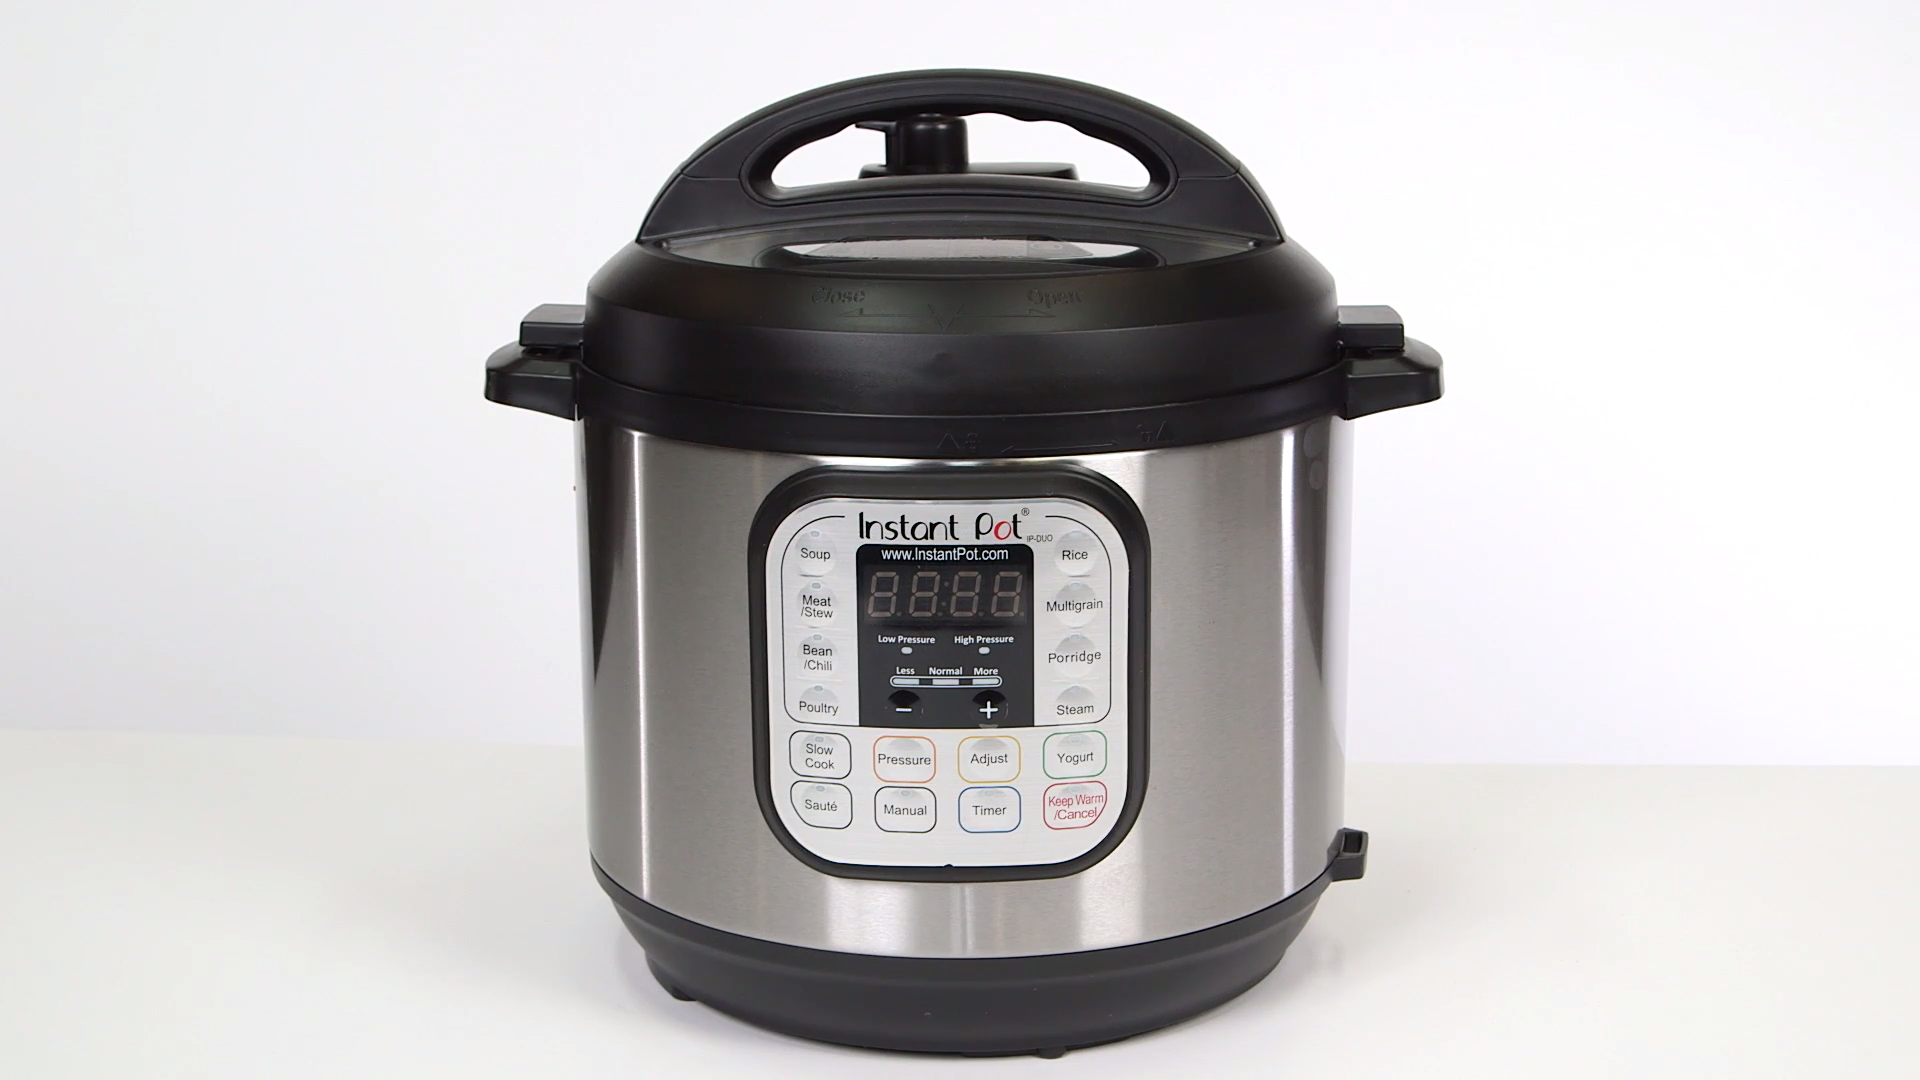 9 Things You Should Know the First Time You Use an Instant Pot